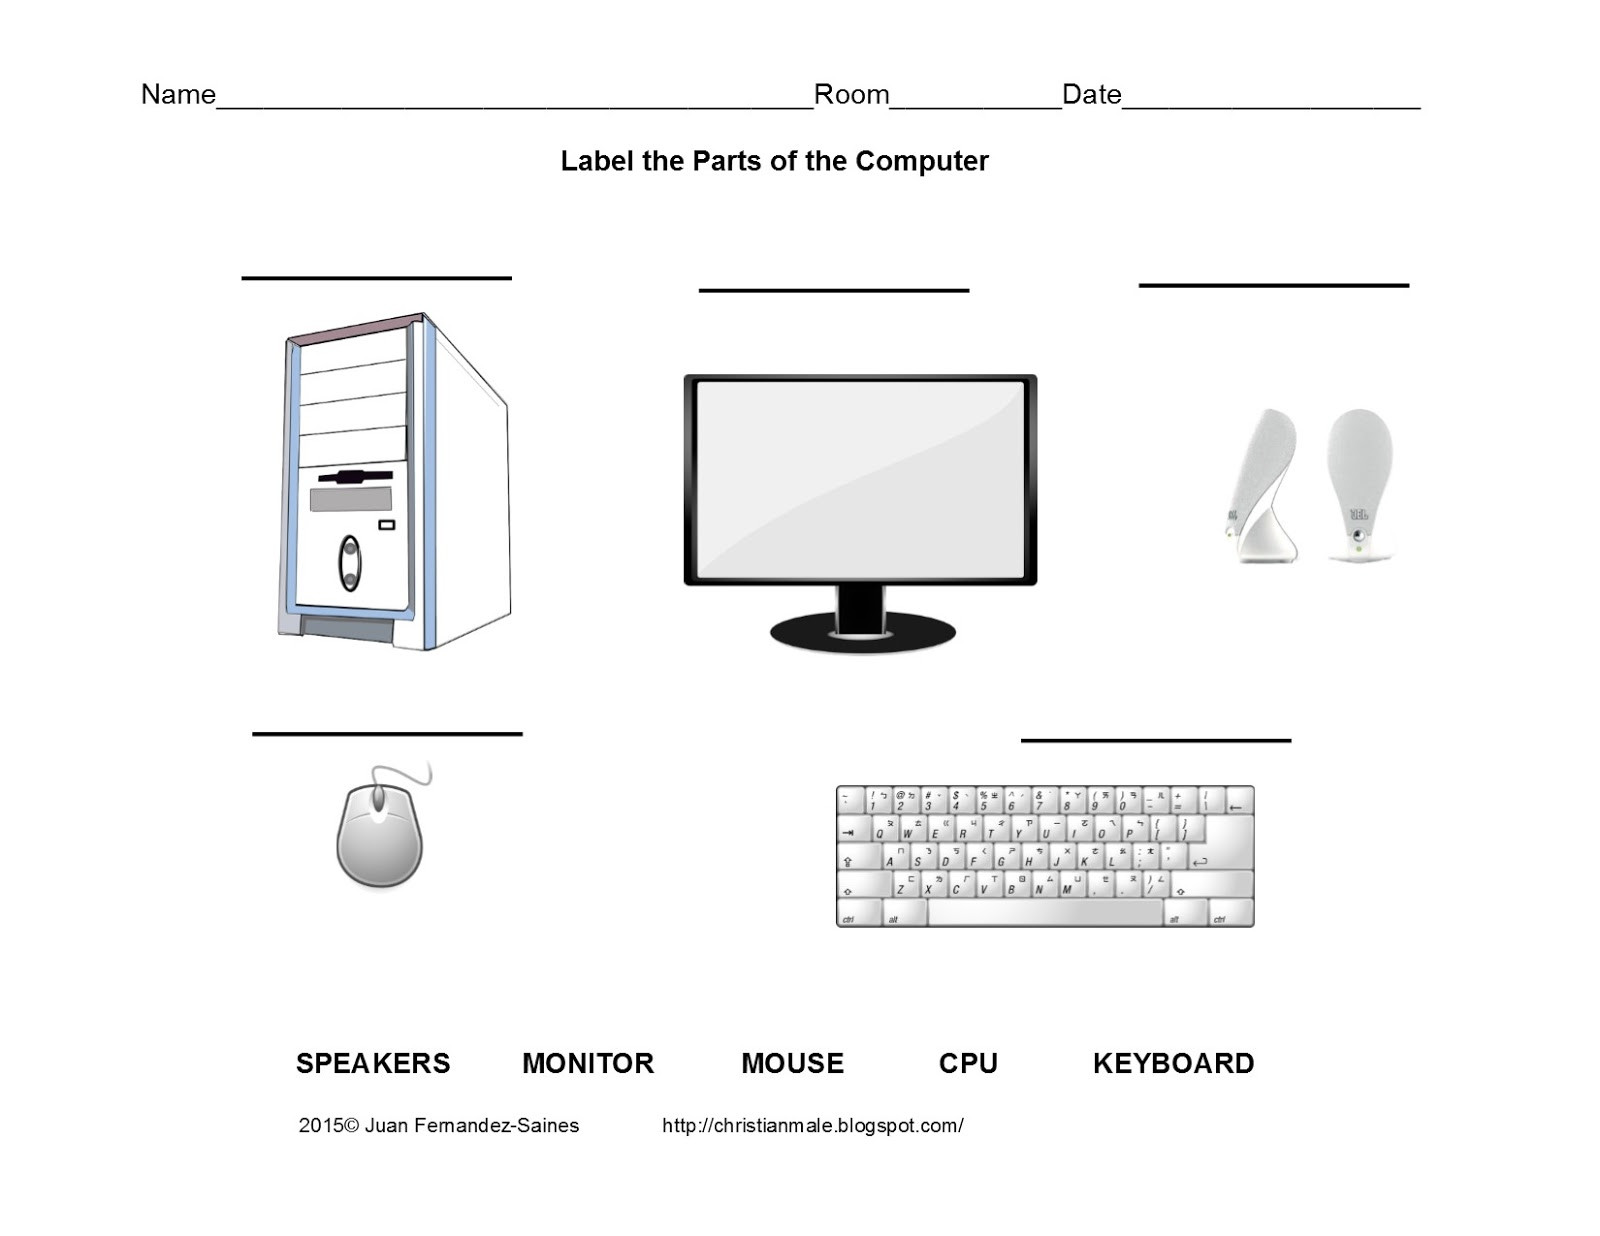 Free Printable Computer Worksheets Parts the Puter Worksheet